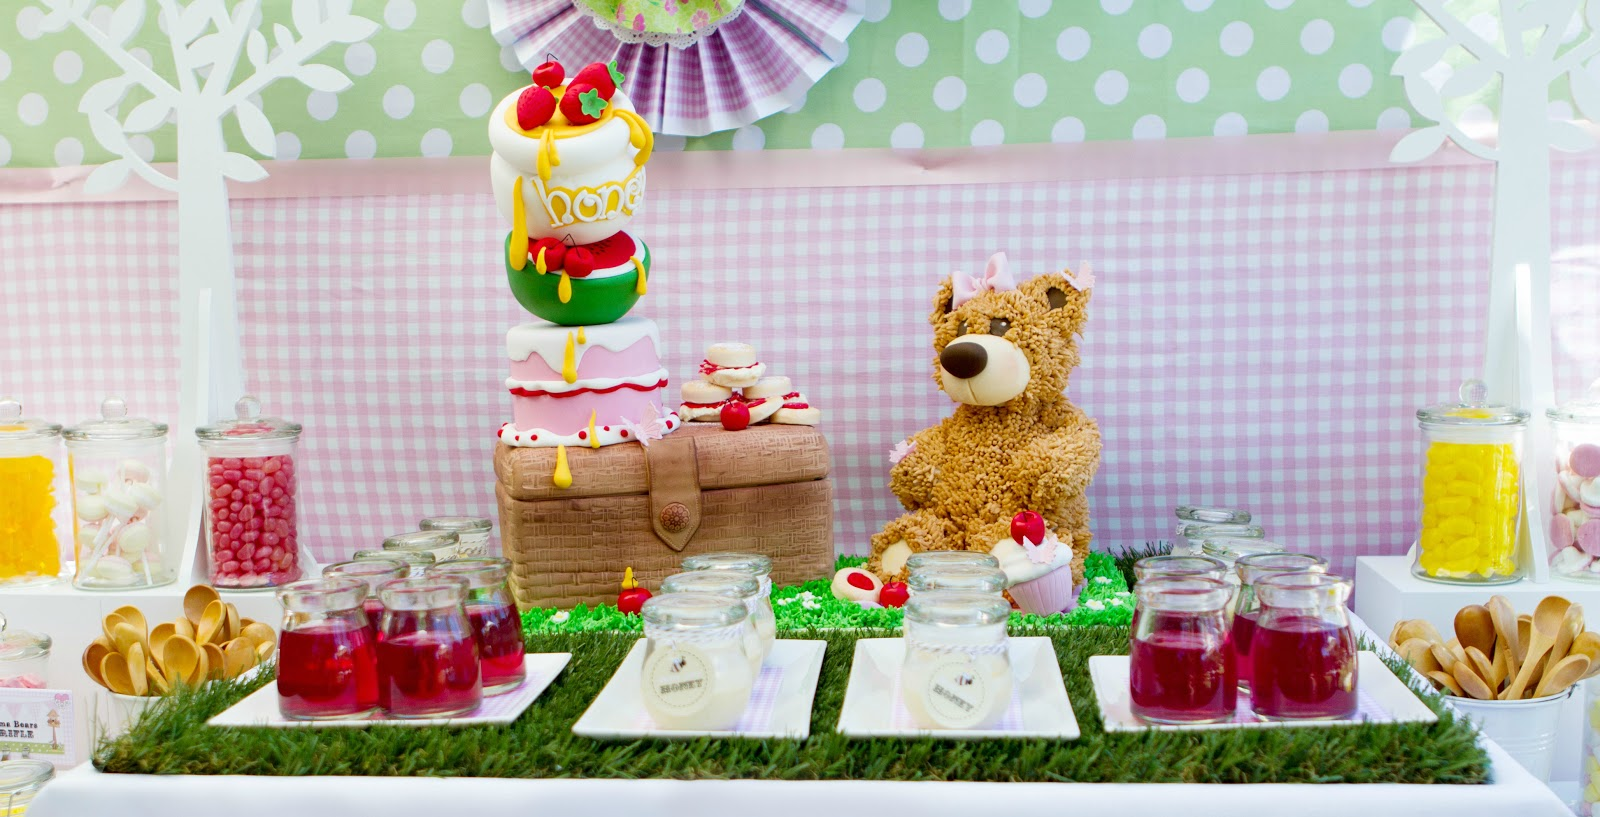 Little Big Company | The Blog: Teddy Bears Picnic by Calamity Cakes